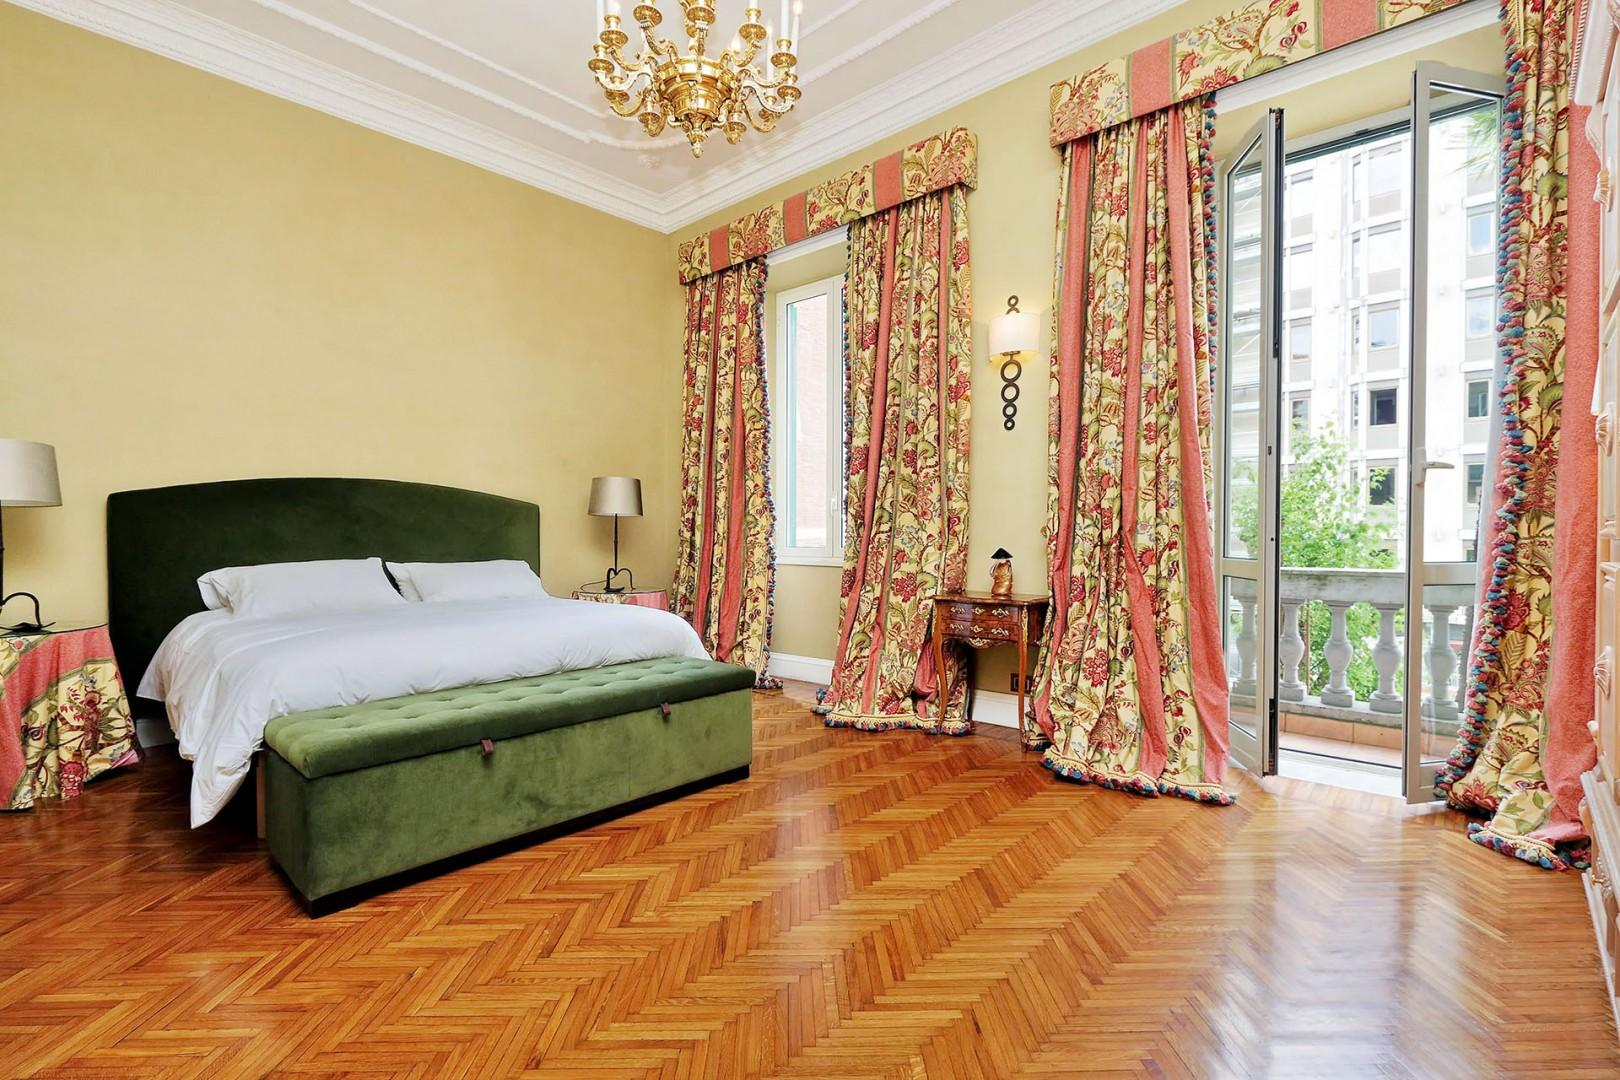 Large, comfortable bedroom 1 with french door leading out to a narrow balcony.